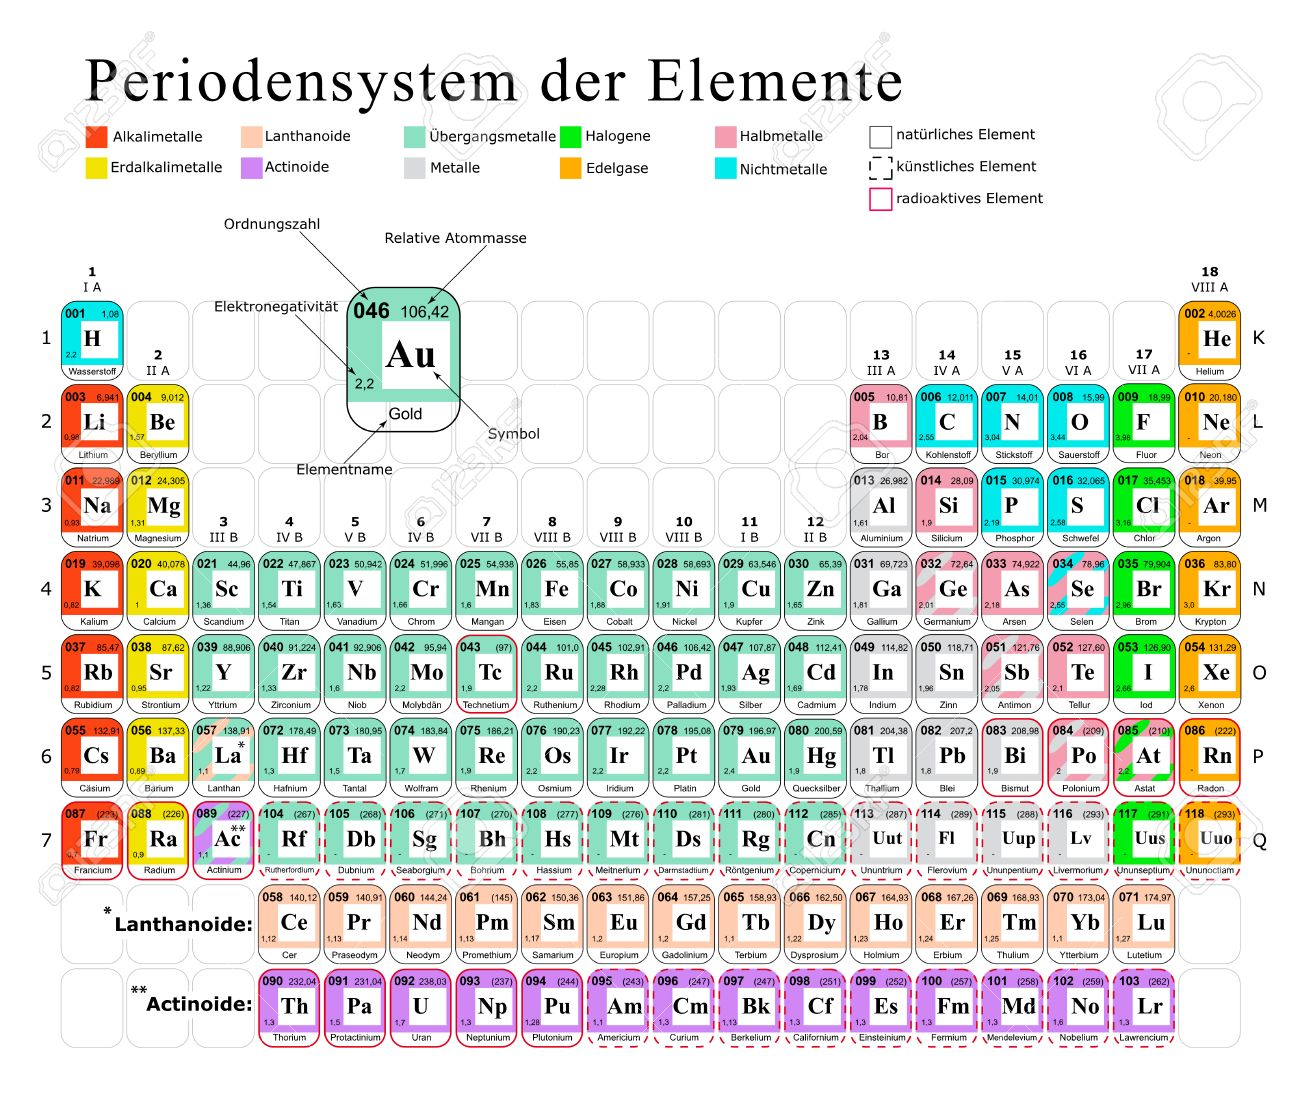 Colorful 2d periodic table of chemical elements wallpaper learning colorful 2d periodic table of chemical elements wallpaper learning and studying in german language urtaz Images